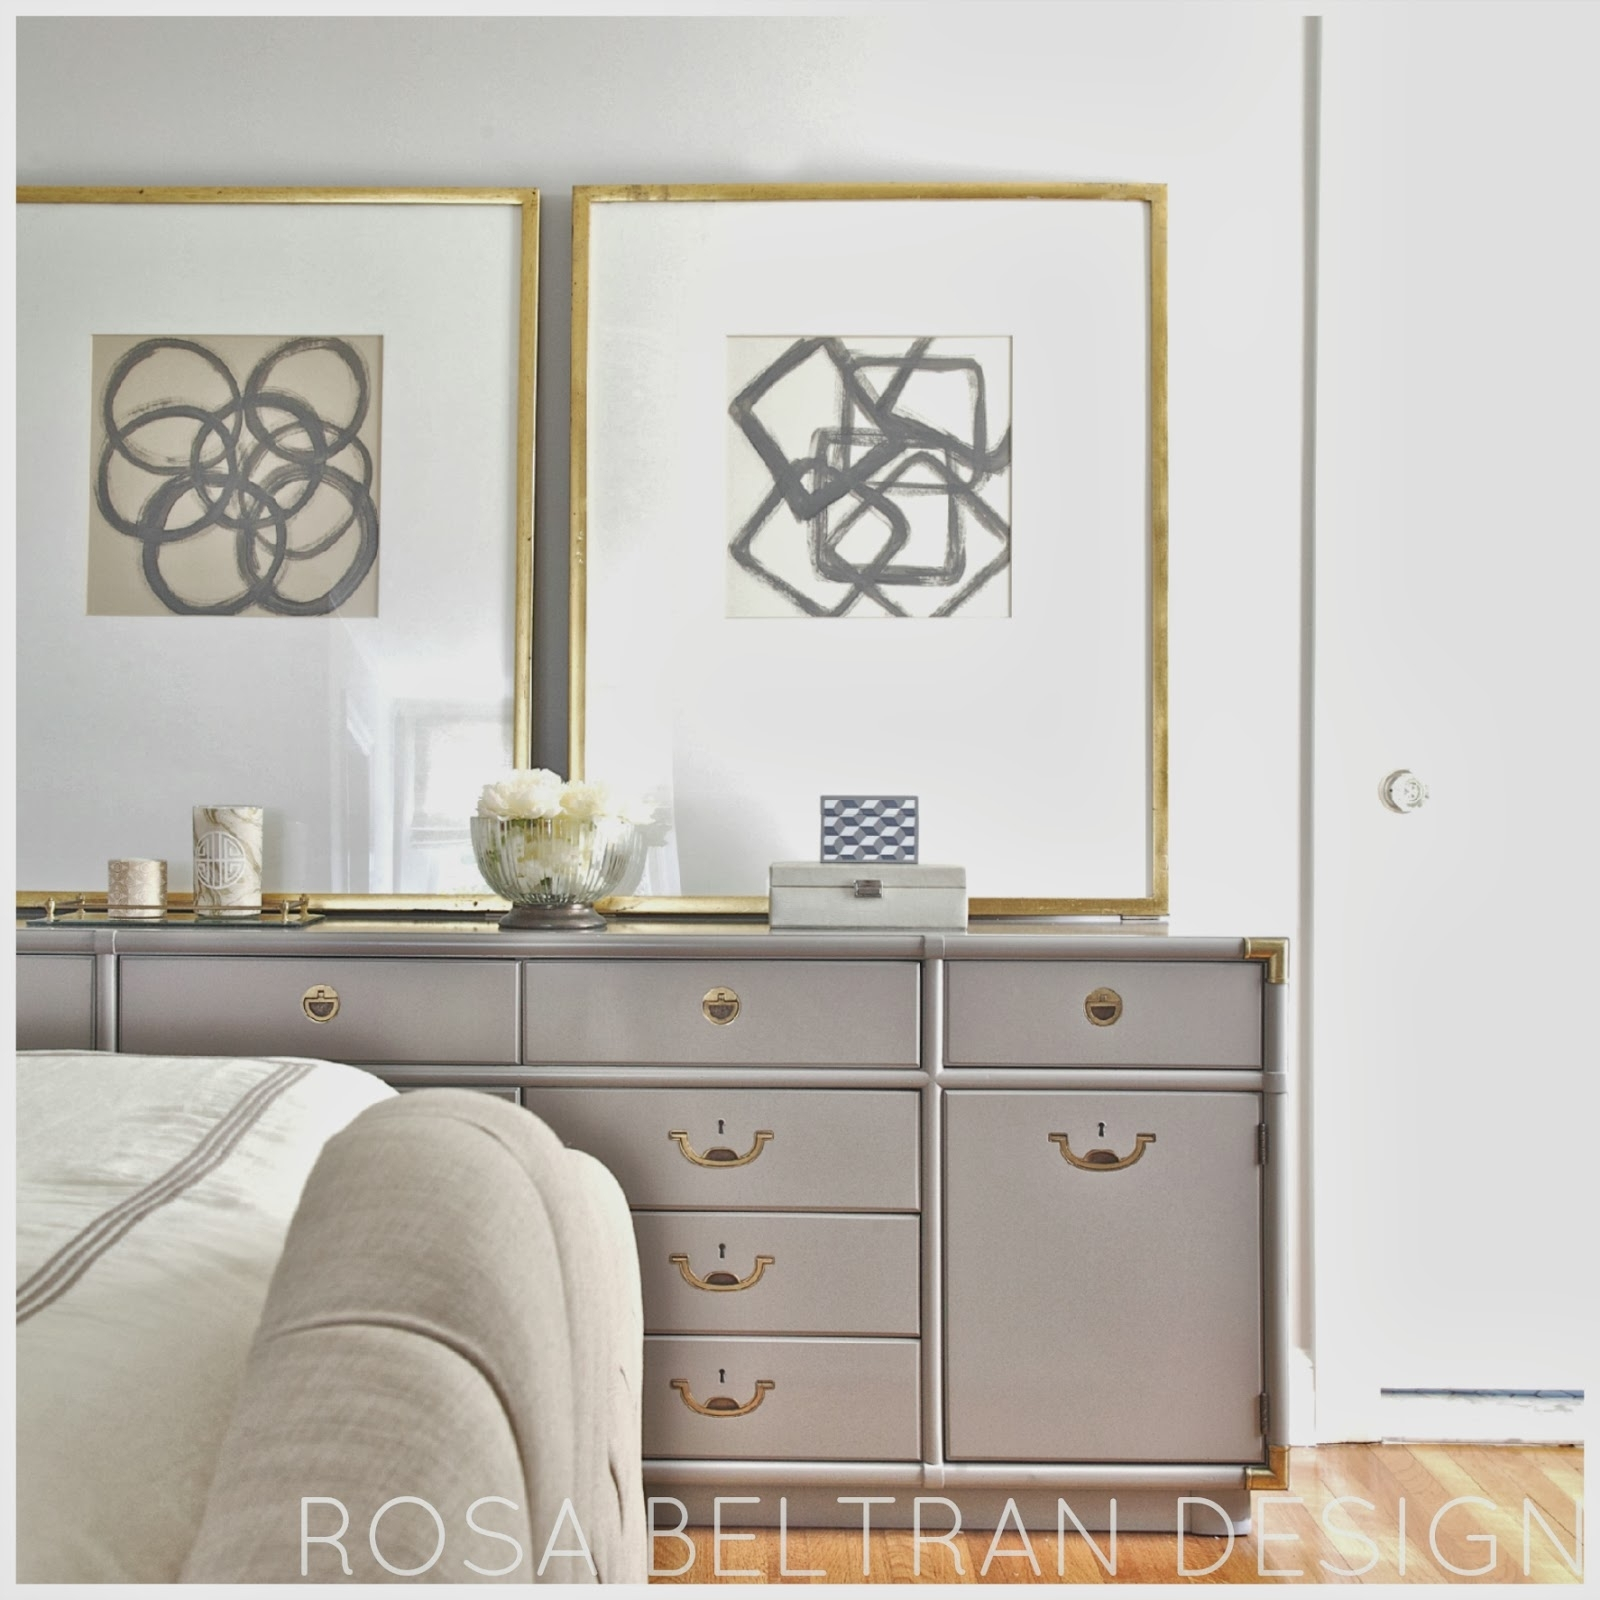 Rosa Beltran Design: Diy Wall Art Series: Modern Abstracts With 2017 Diy Modern Abstract Wall Art (View 10 of 20)